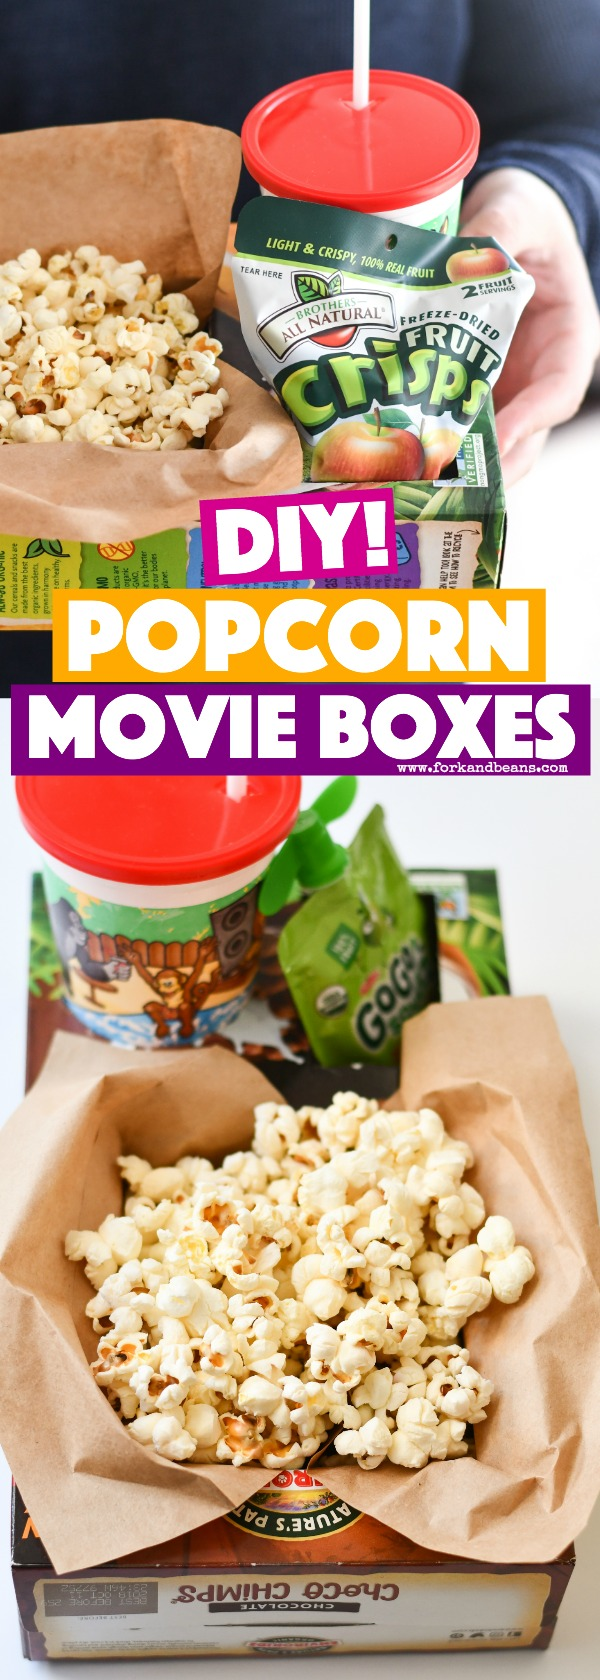 A cereal box turned into a popcorn container with a cup and snack holder